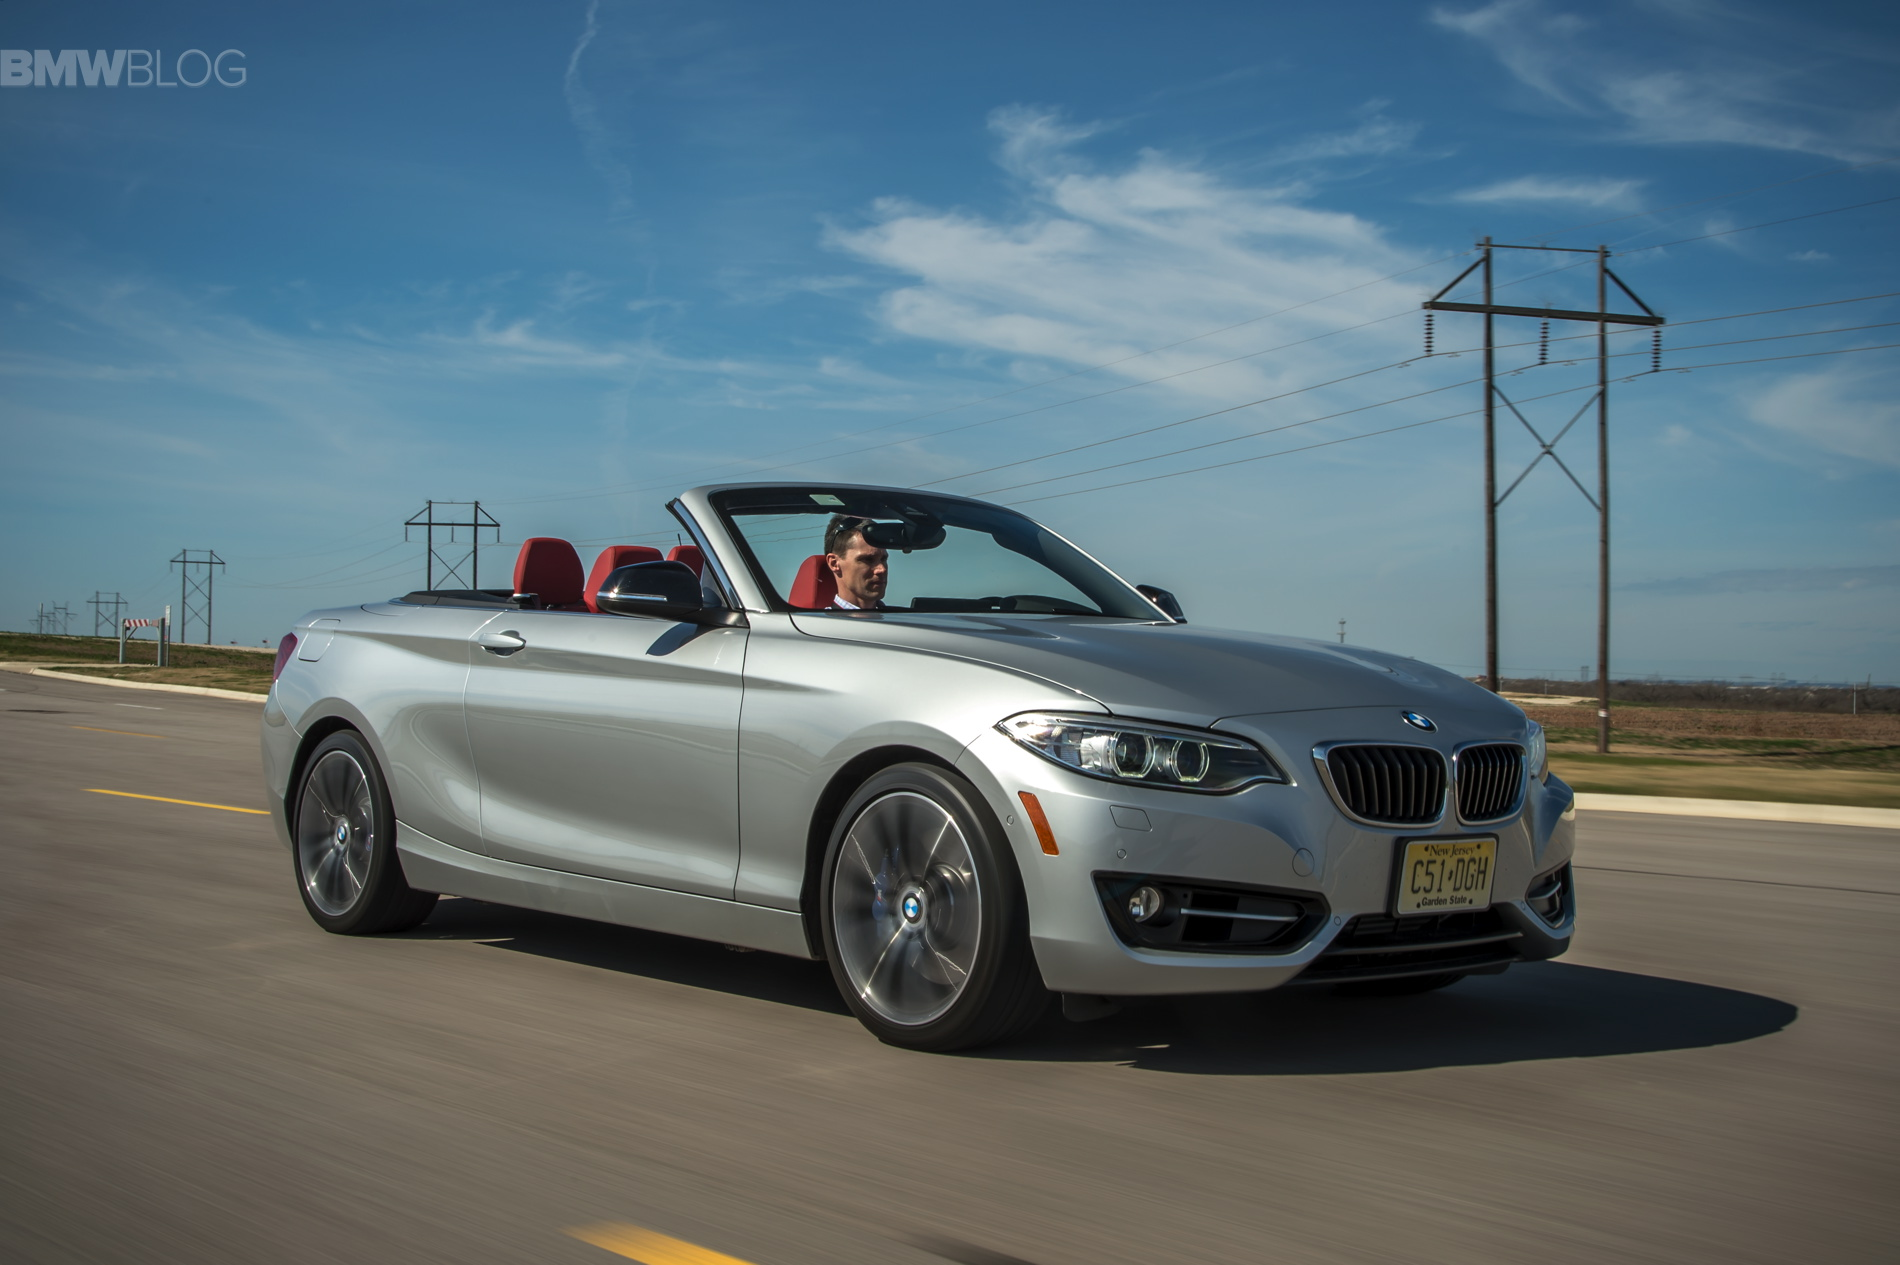 BMW 2 SERIES CONVERTIBLE TEST DRIVE images 03